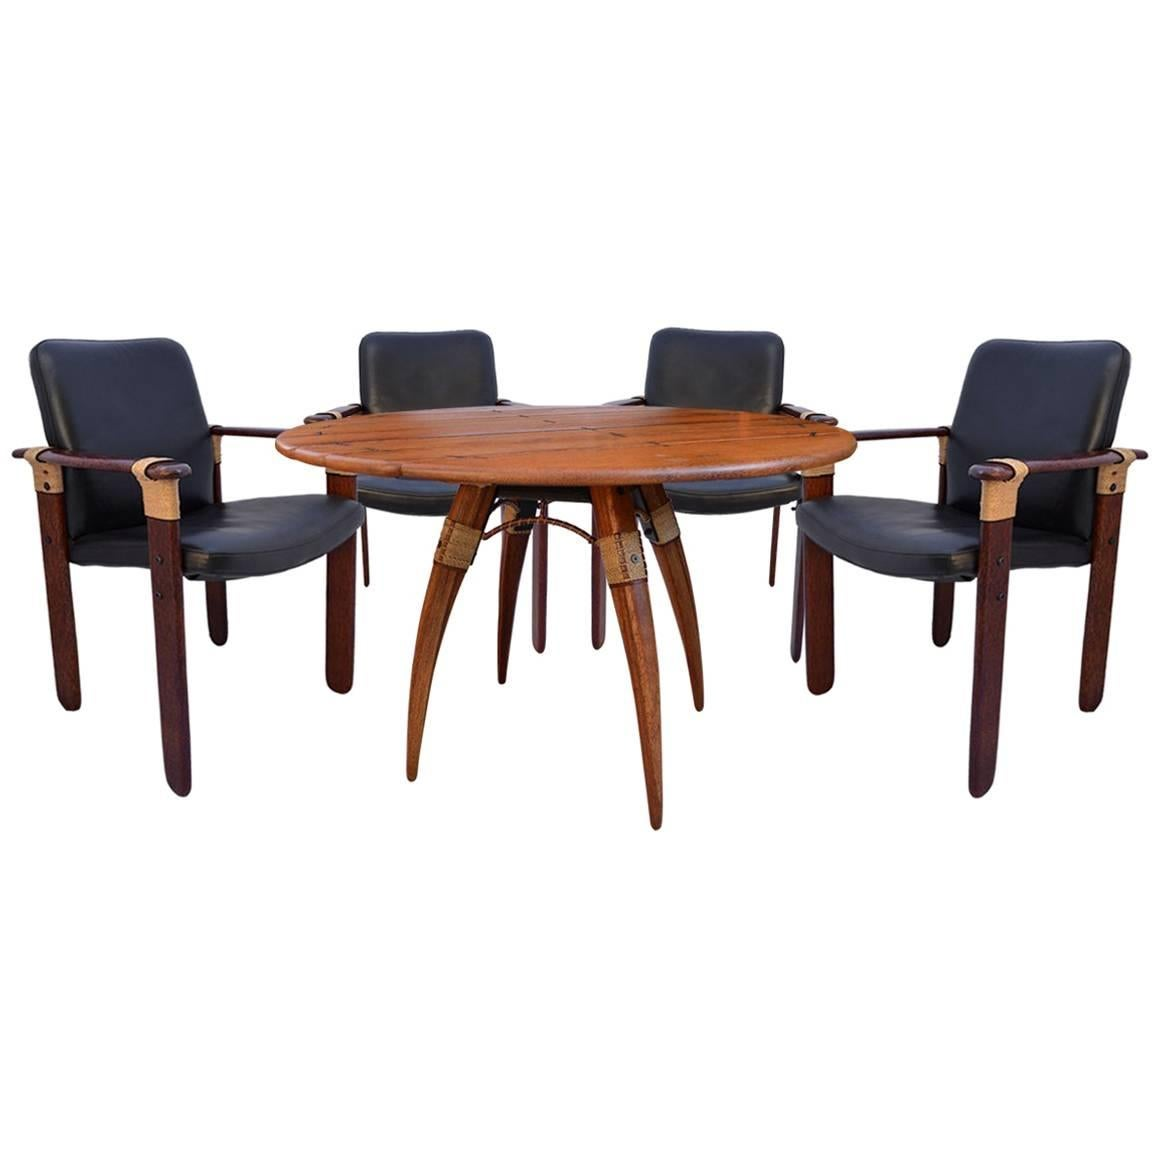 Pacific Green Round Dining Table With Five Matching Chairs